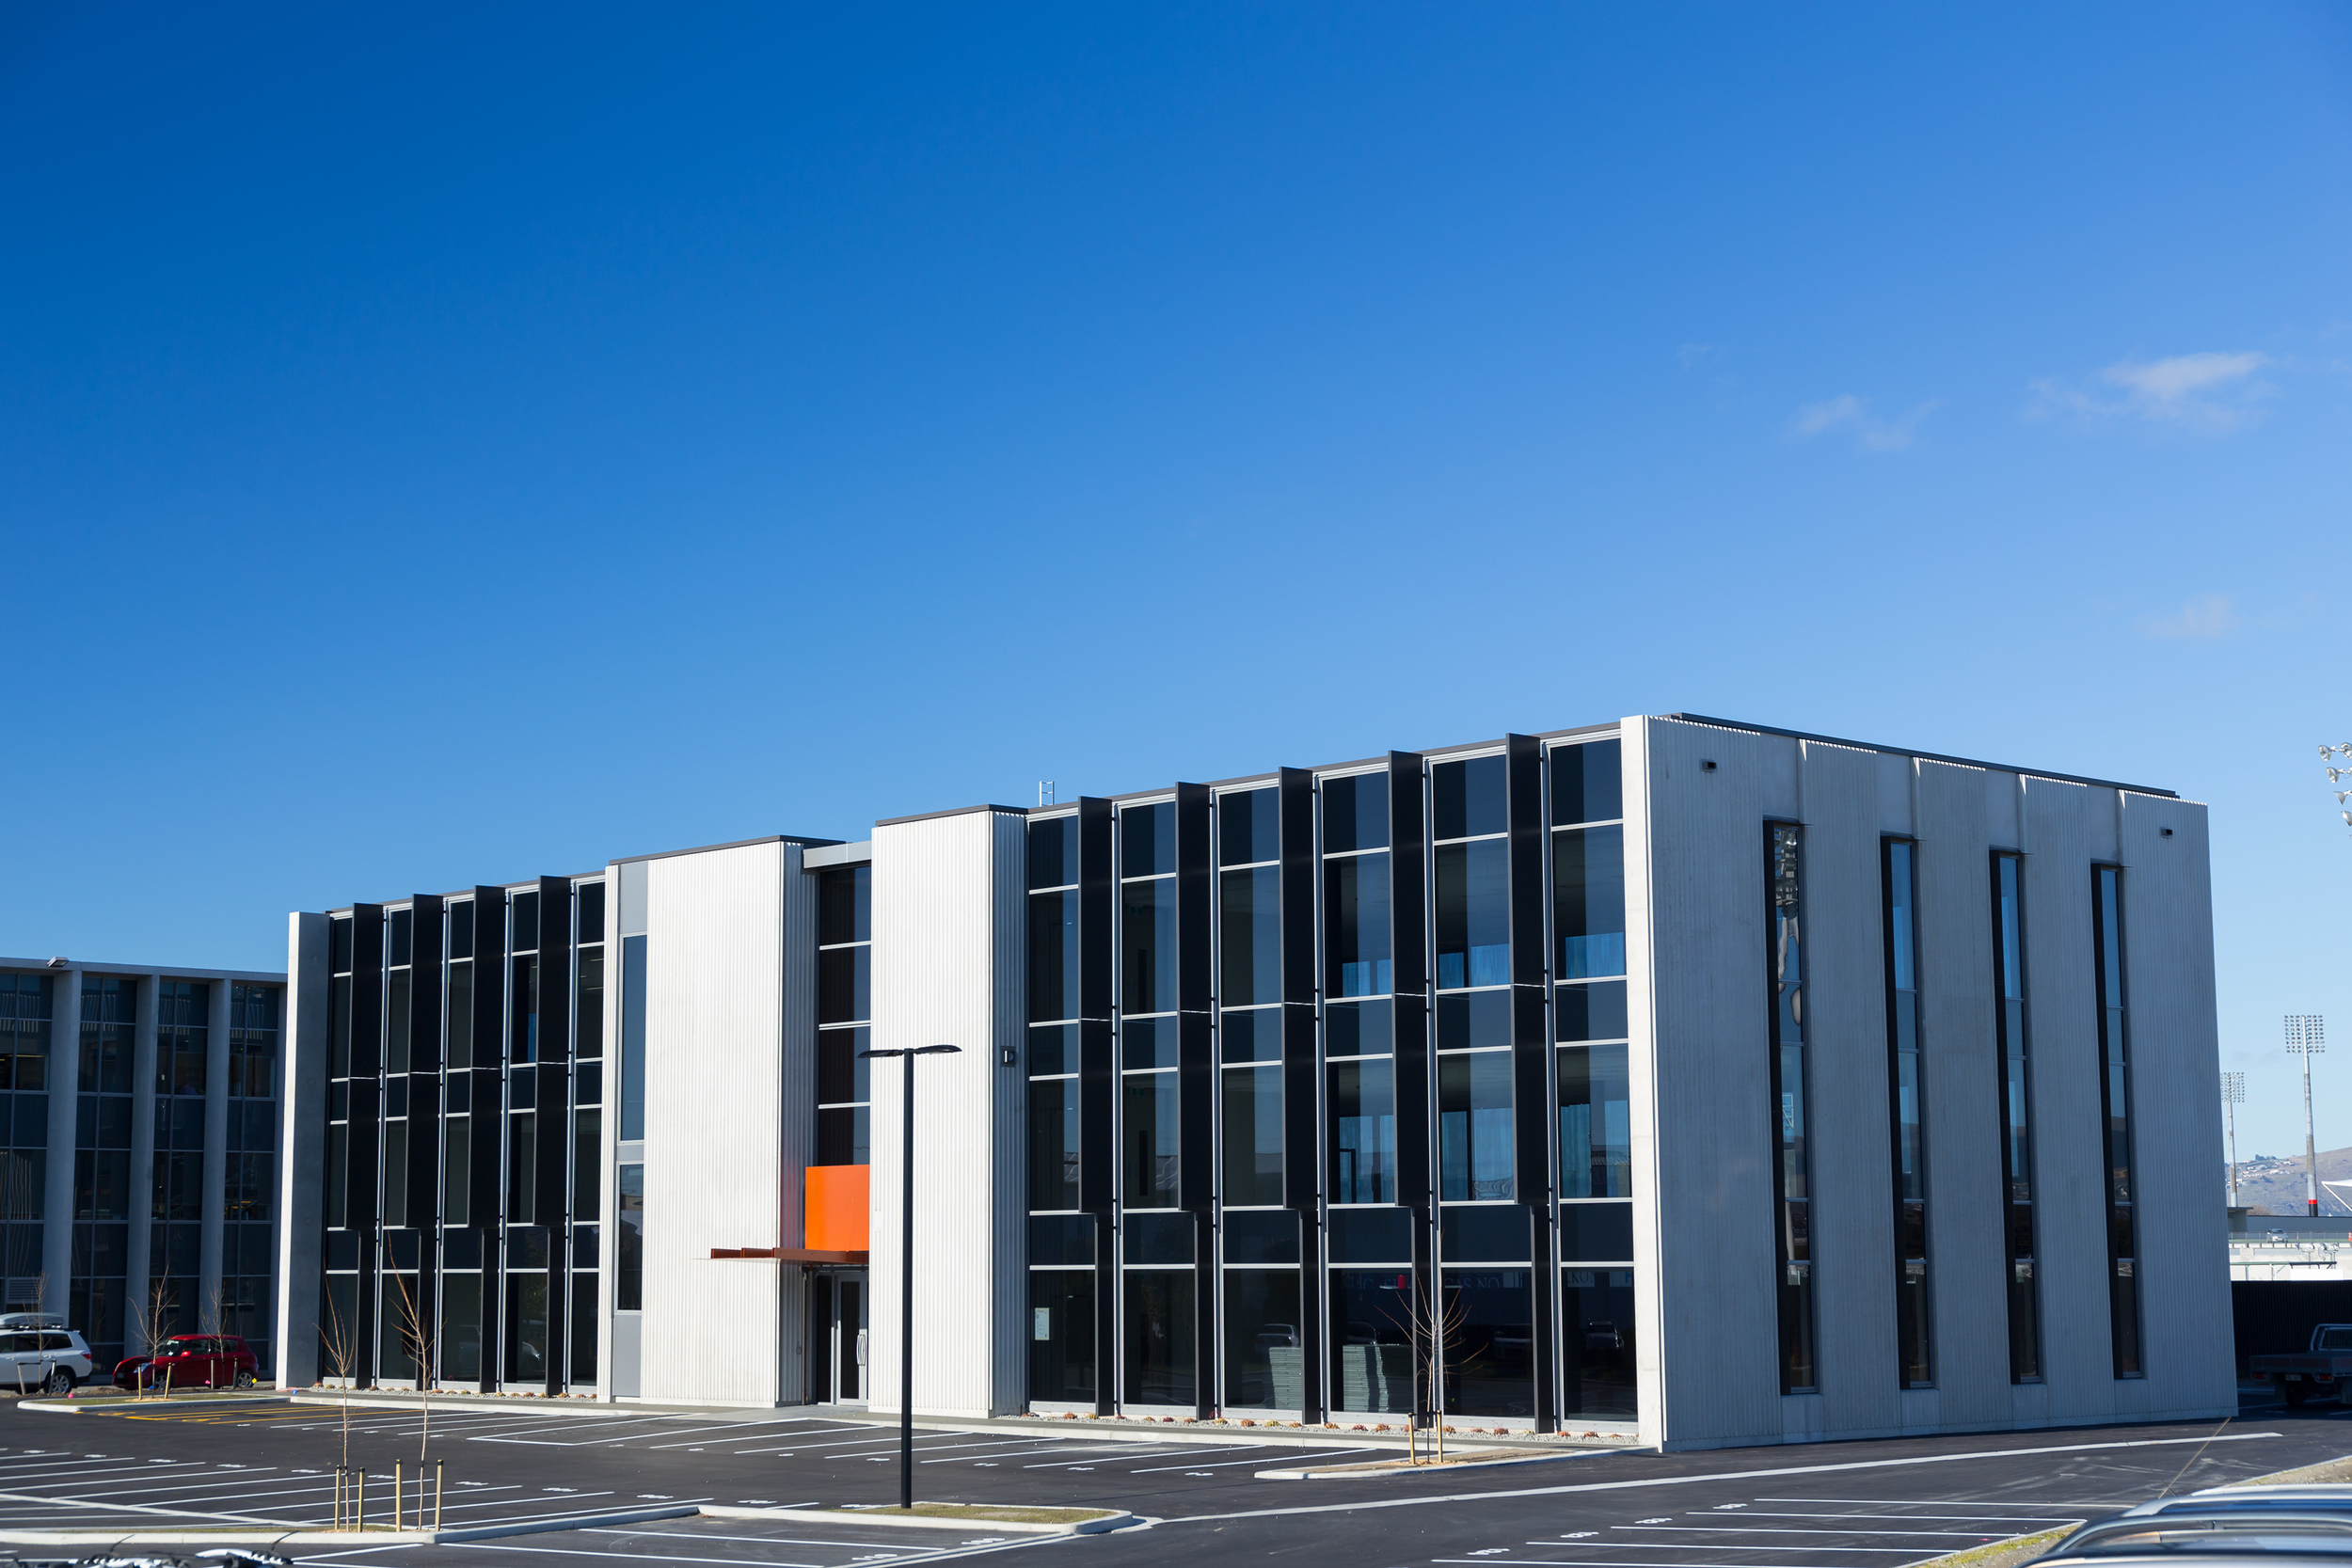 120 Wrights Road Offices, Christchurch